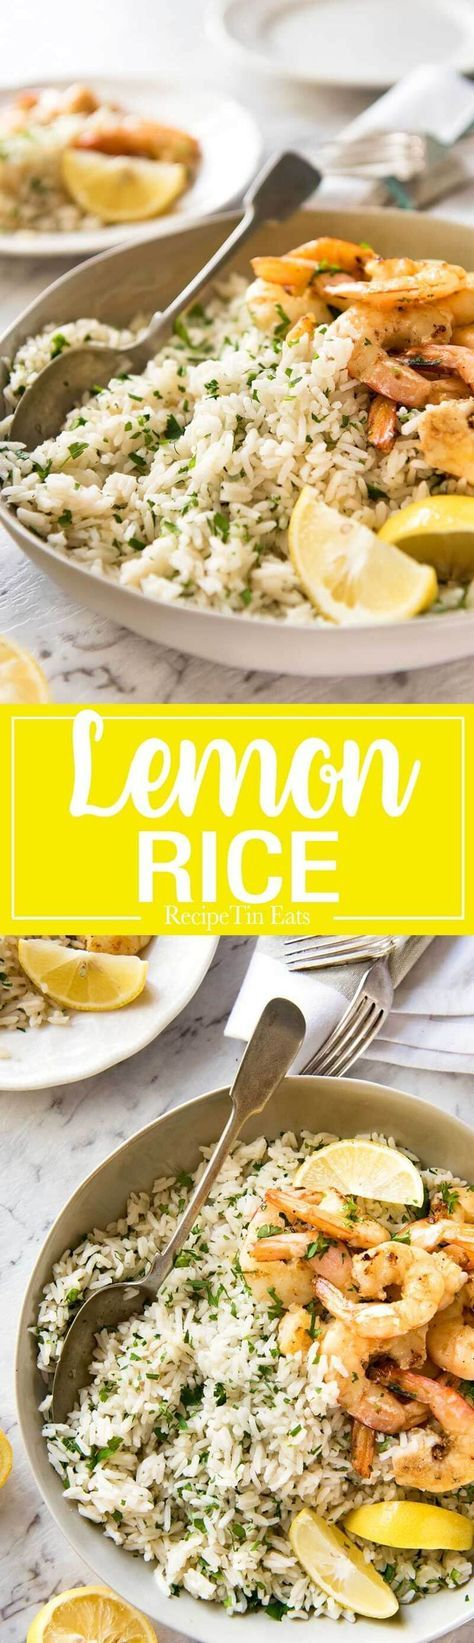 This Lemon Rice Pilaf is so delicious, it can be eaten plain! Lovely bright fresh lemon flavours with herbs.